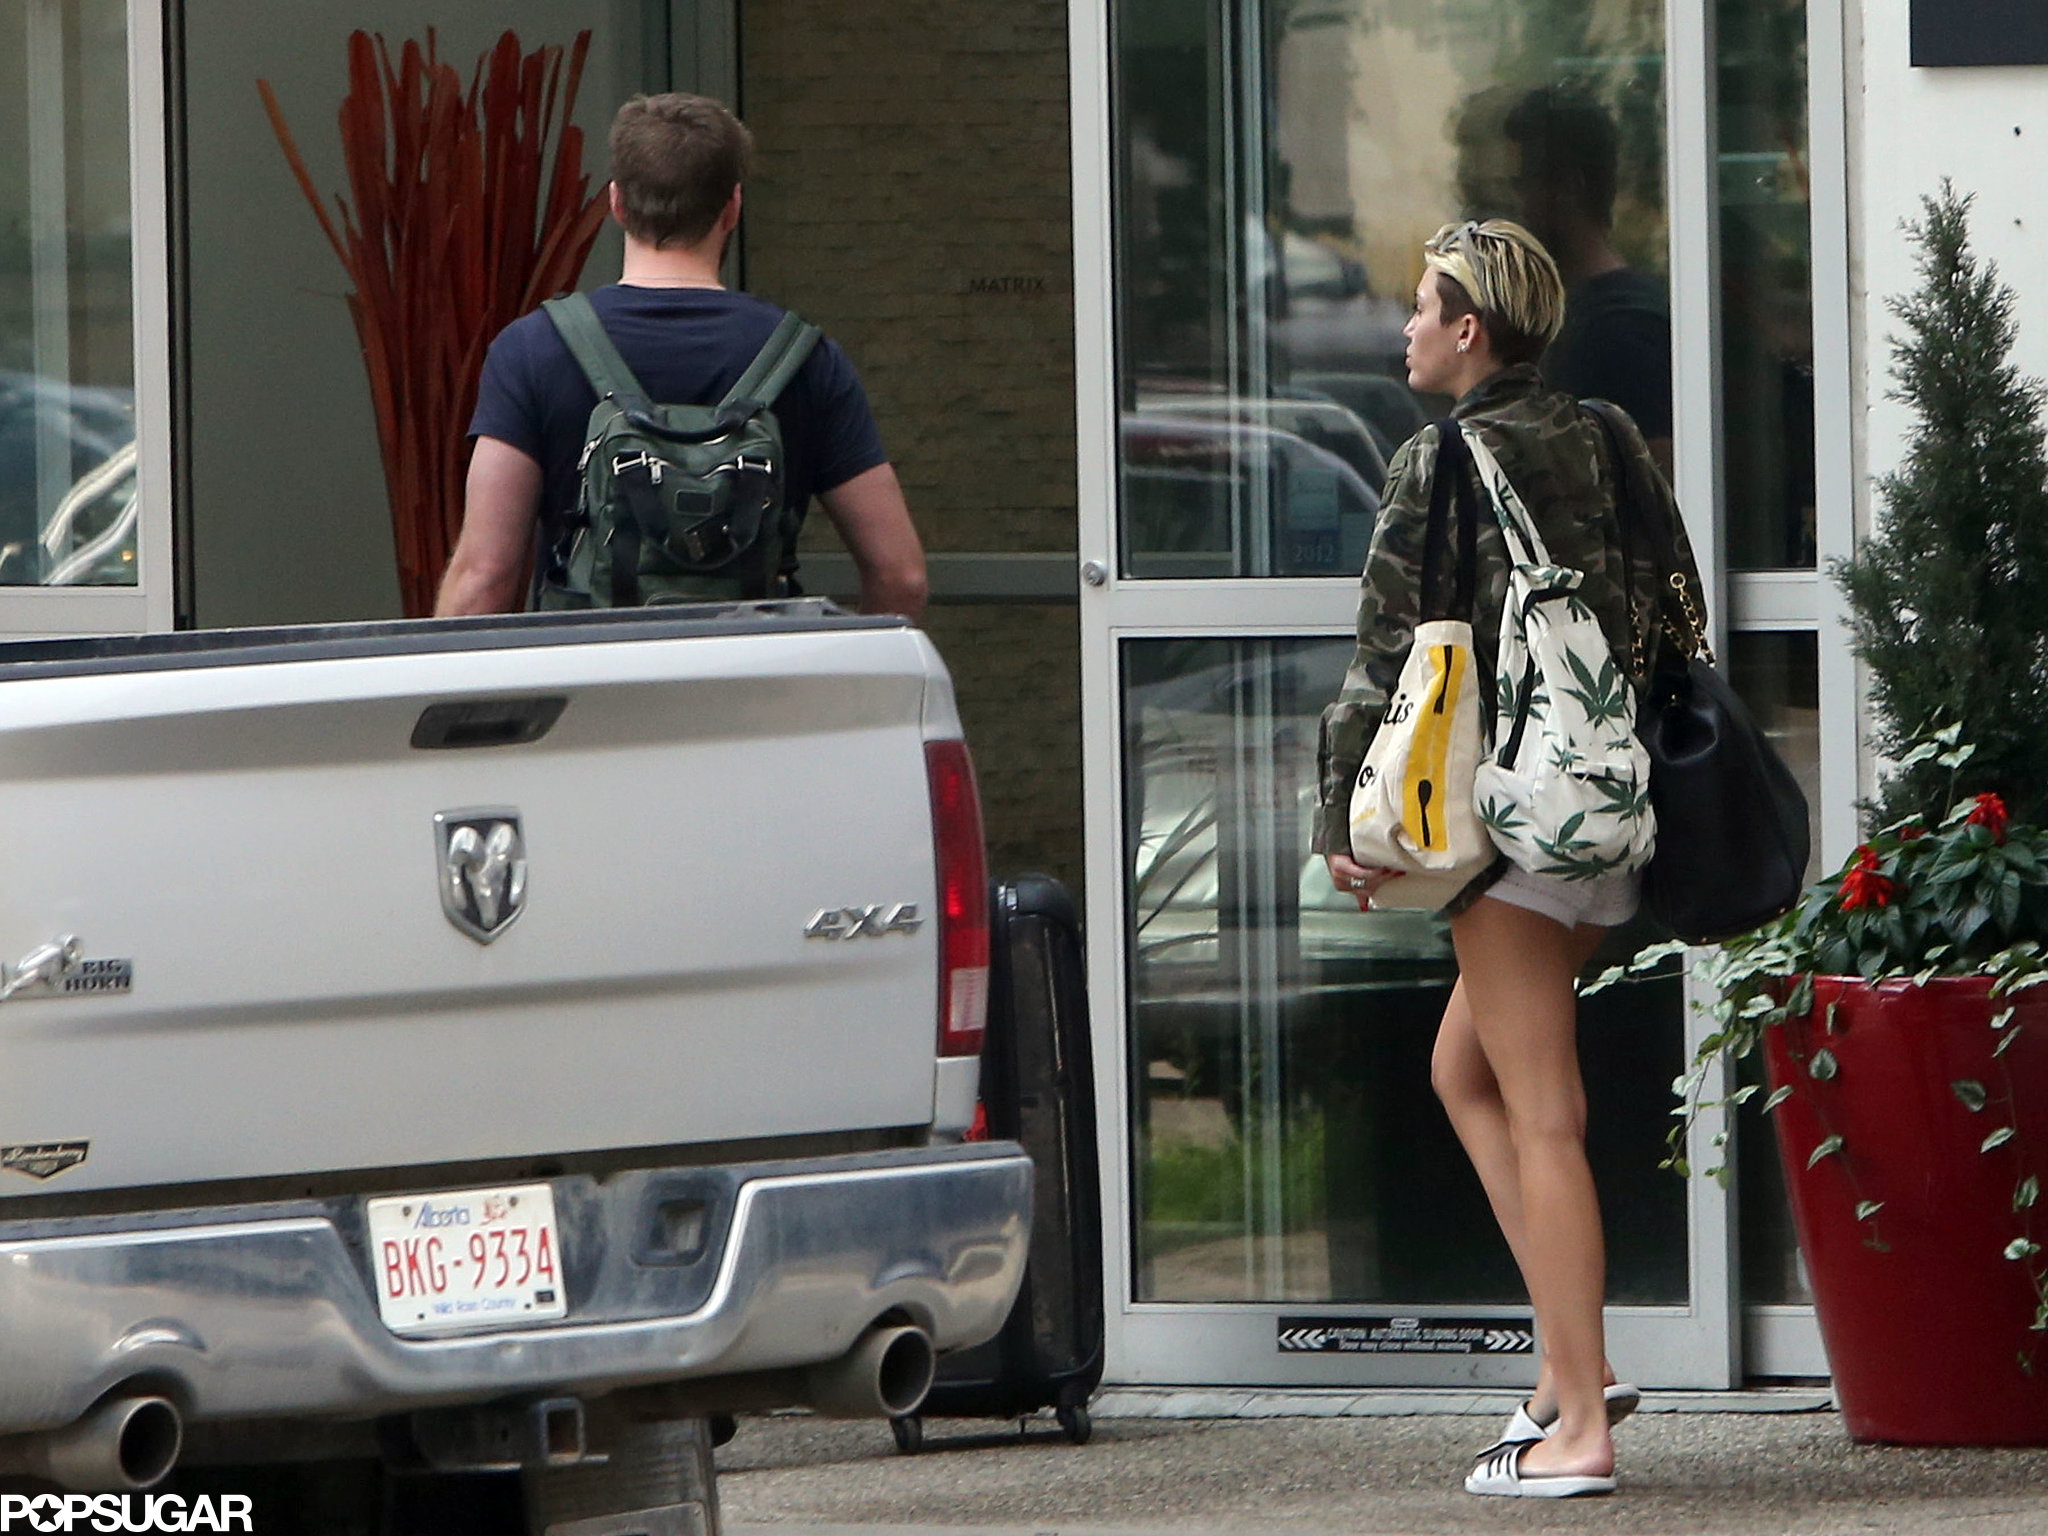 Miley Cyrus and Liam Hemsworth were reunited in Canada.